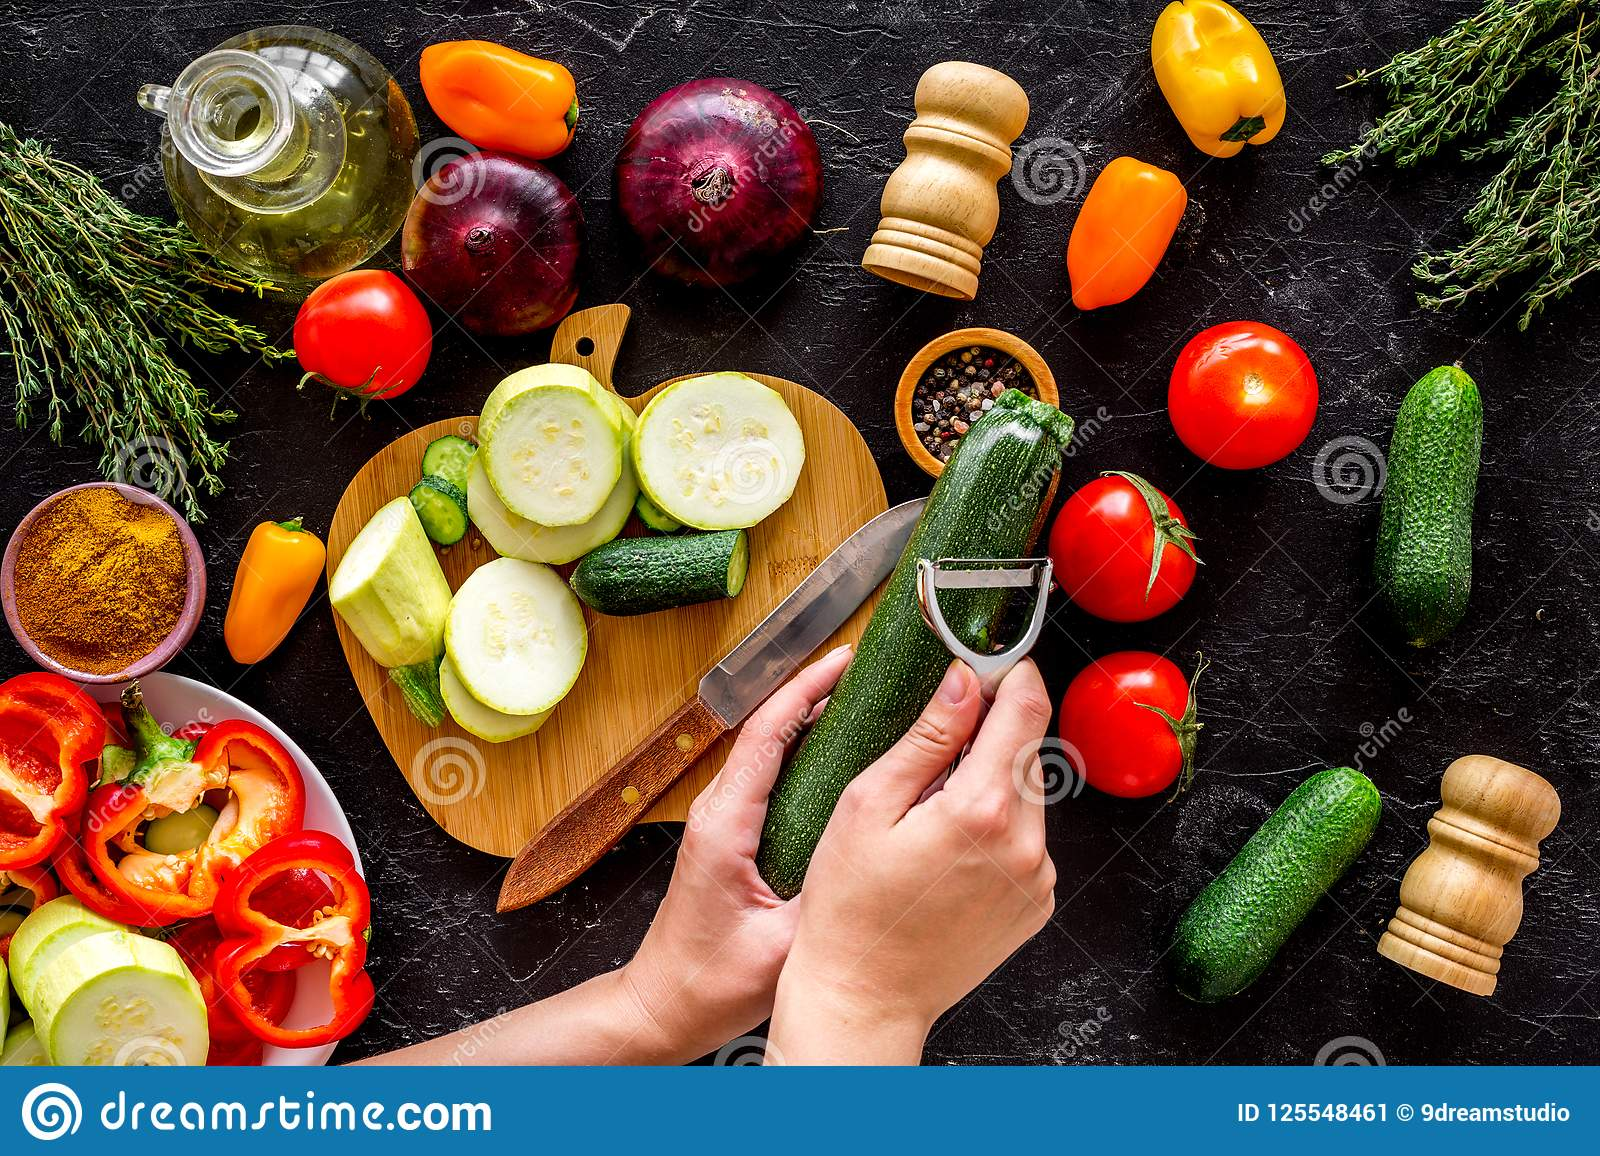 different cuts of vegetables pdf